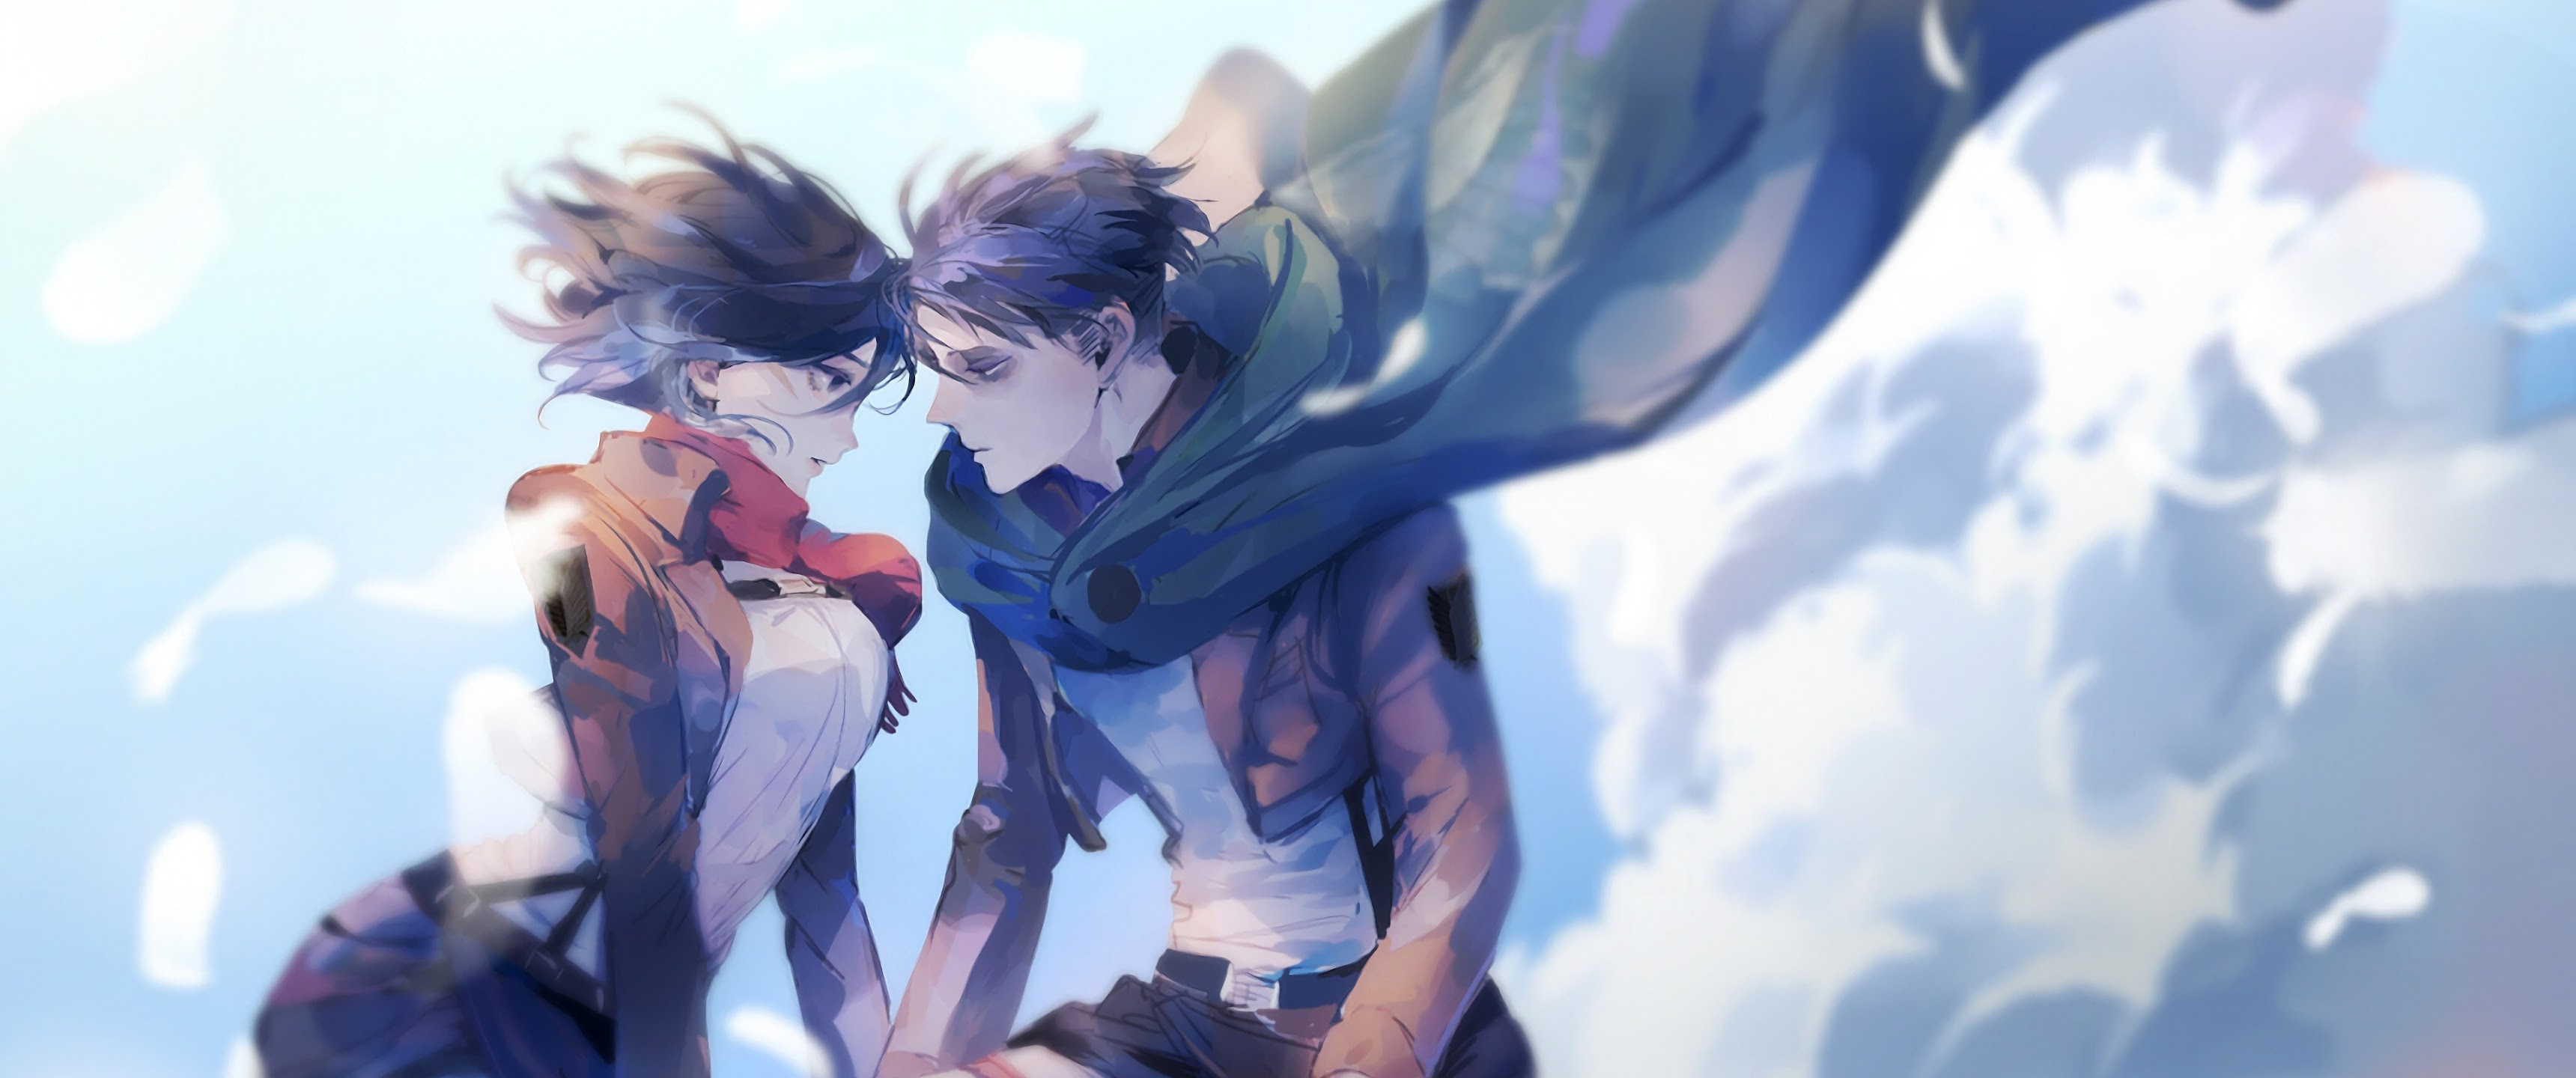 Mikasa And Levi Attack On Titan 4k Wallpaper 156